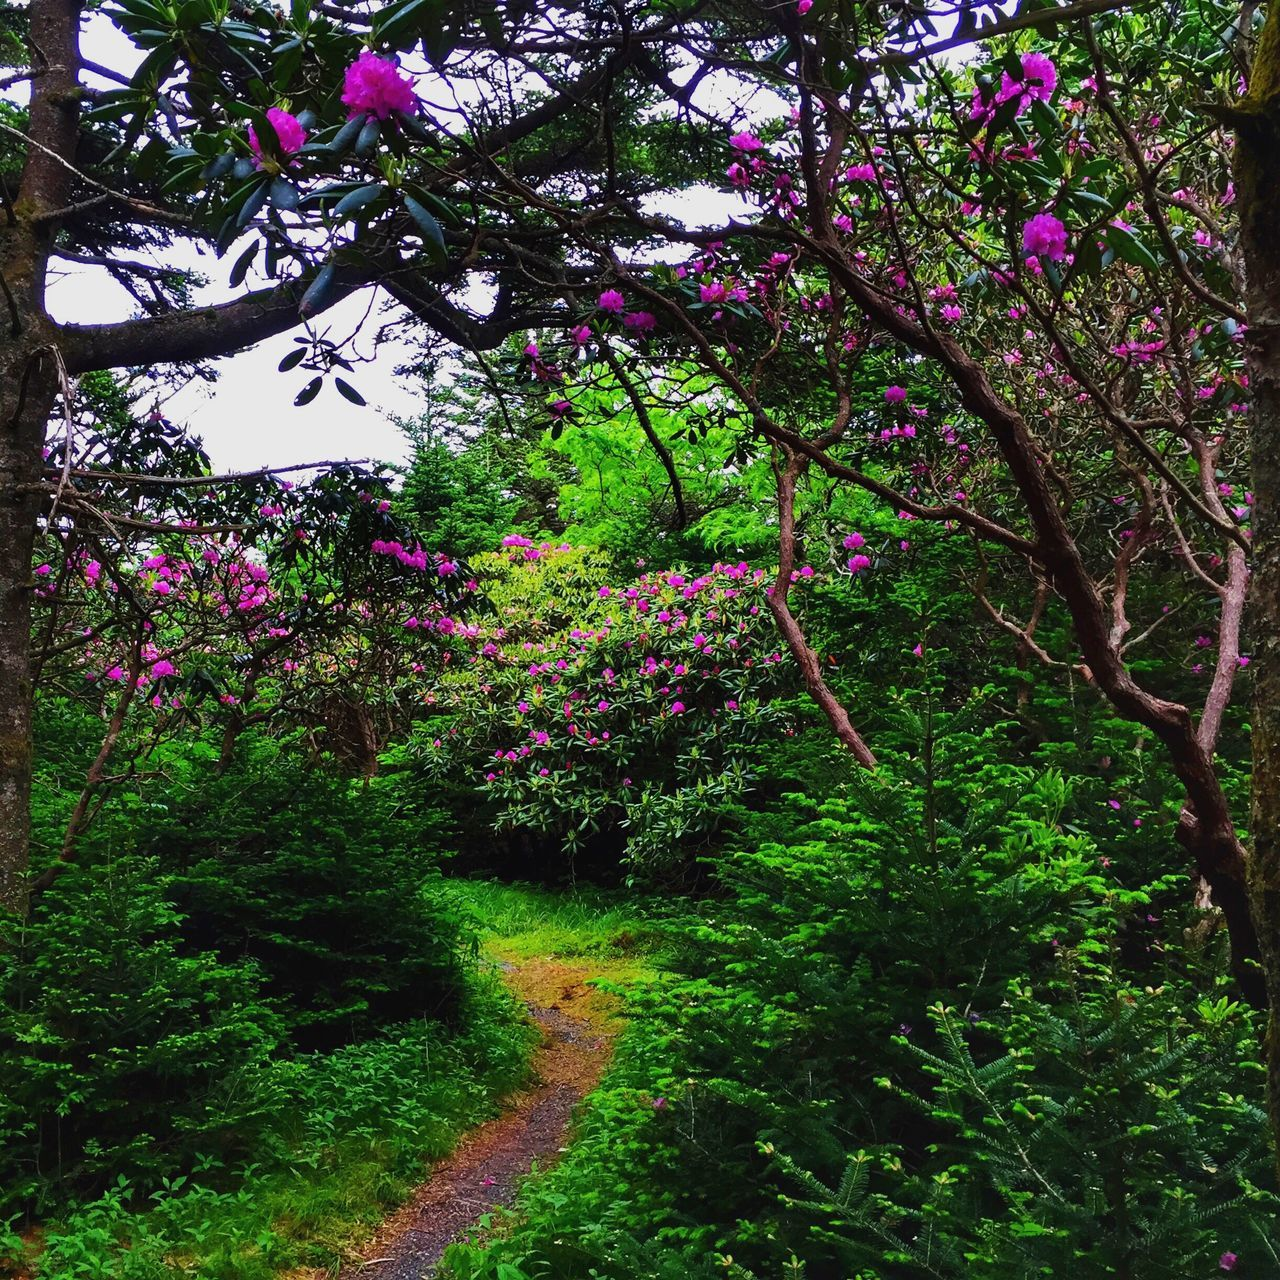 Roan Mountain Tennessee Roll On Springtime 🐦 Flower Growth Nature Beauty In Nature Freshness Purple Blossom Tree Fragility Outdoors No People Green Color Day Rhododendron Exploring Style EyeEm Best Shots Path In Nature Forest